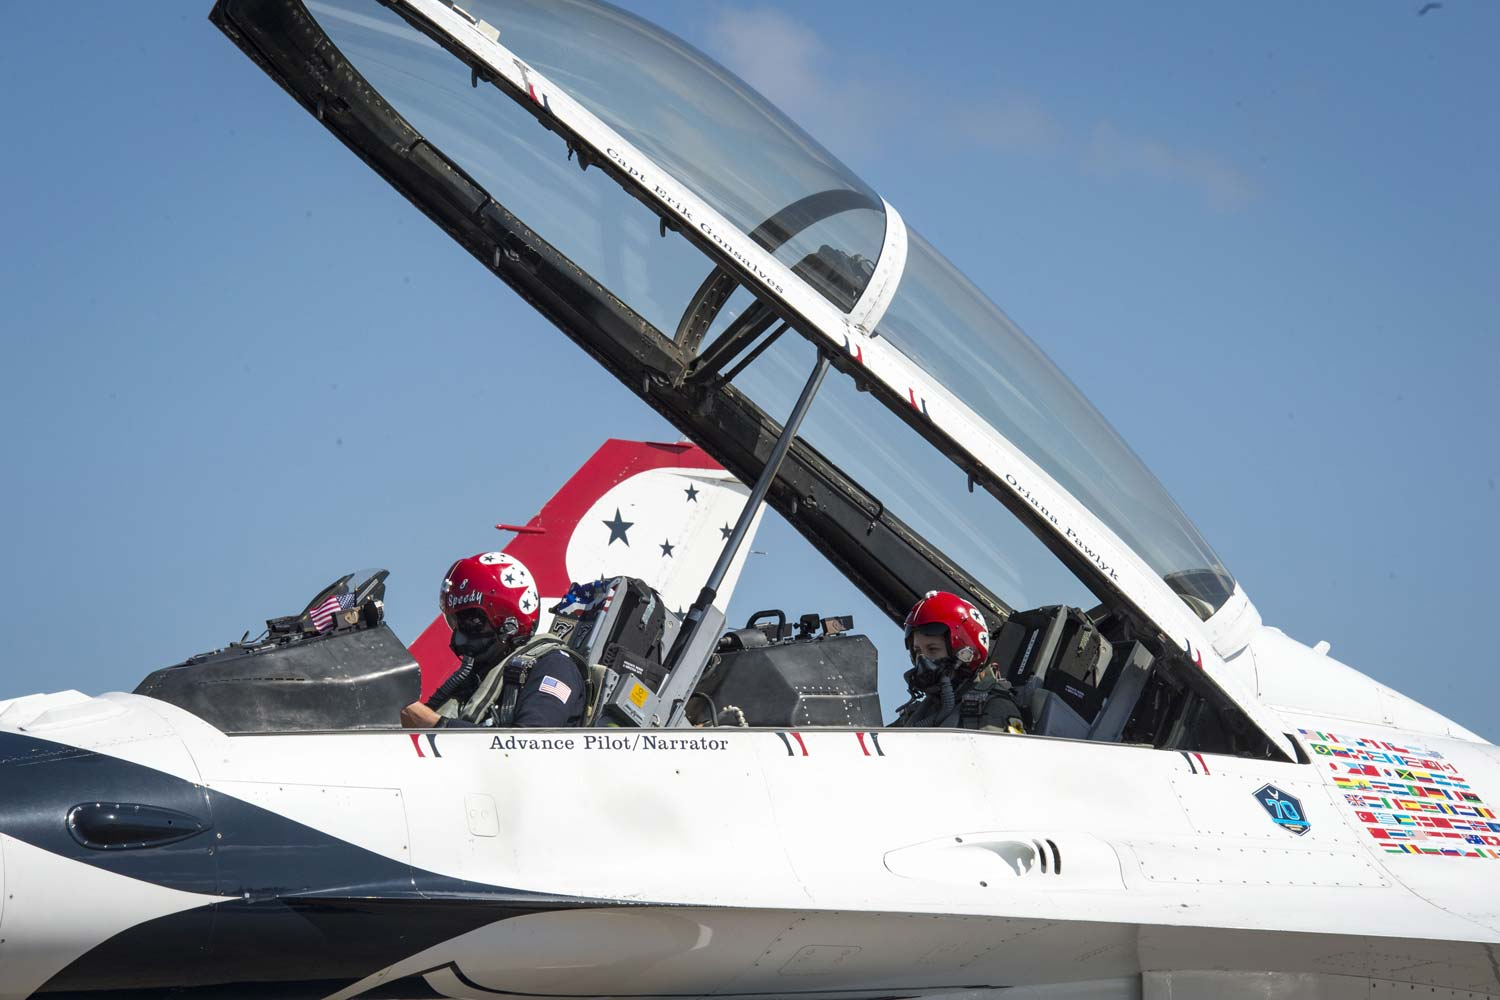 Thunderbirds Gearing Up for First Overseas Trip in Years